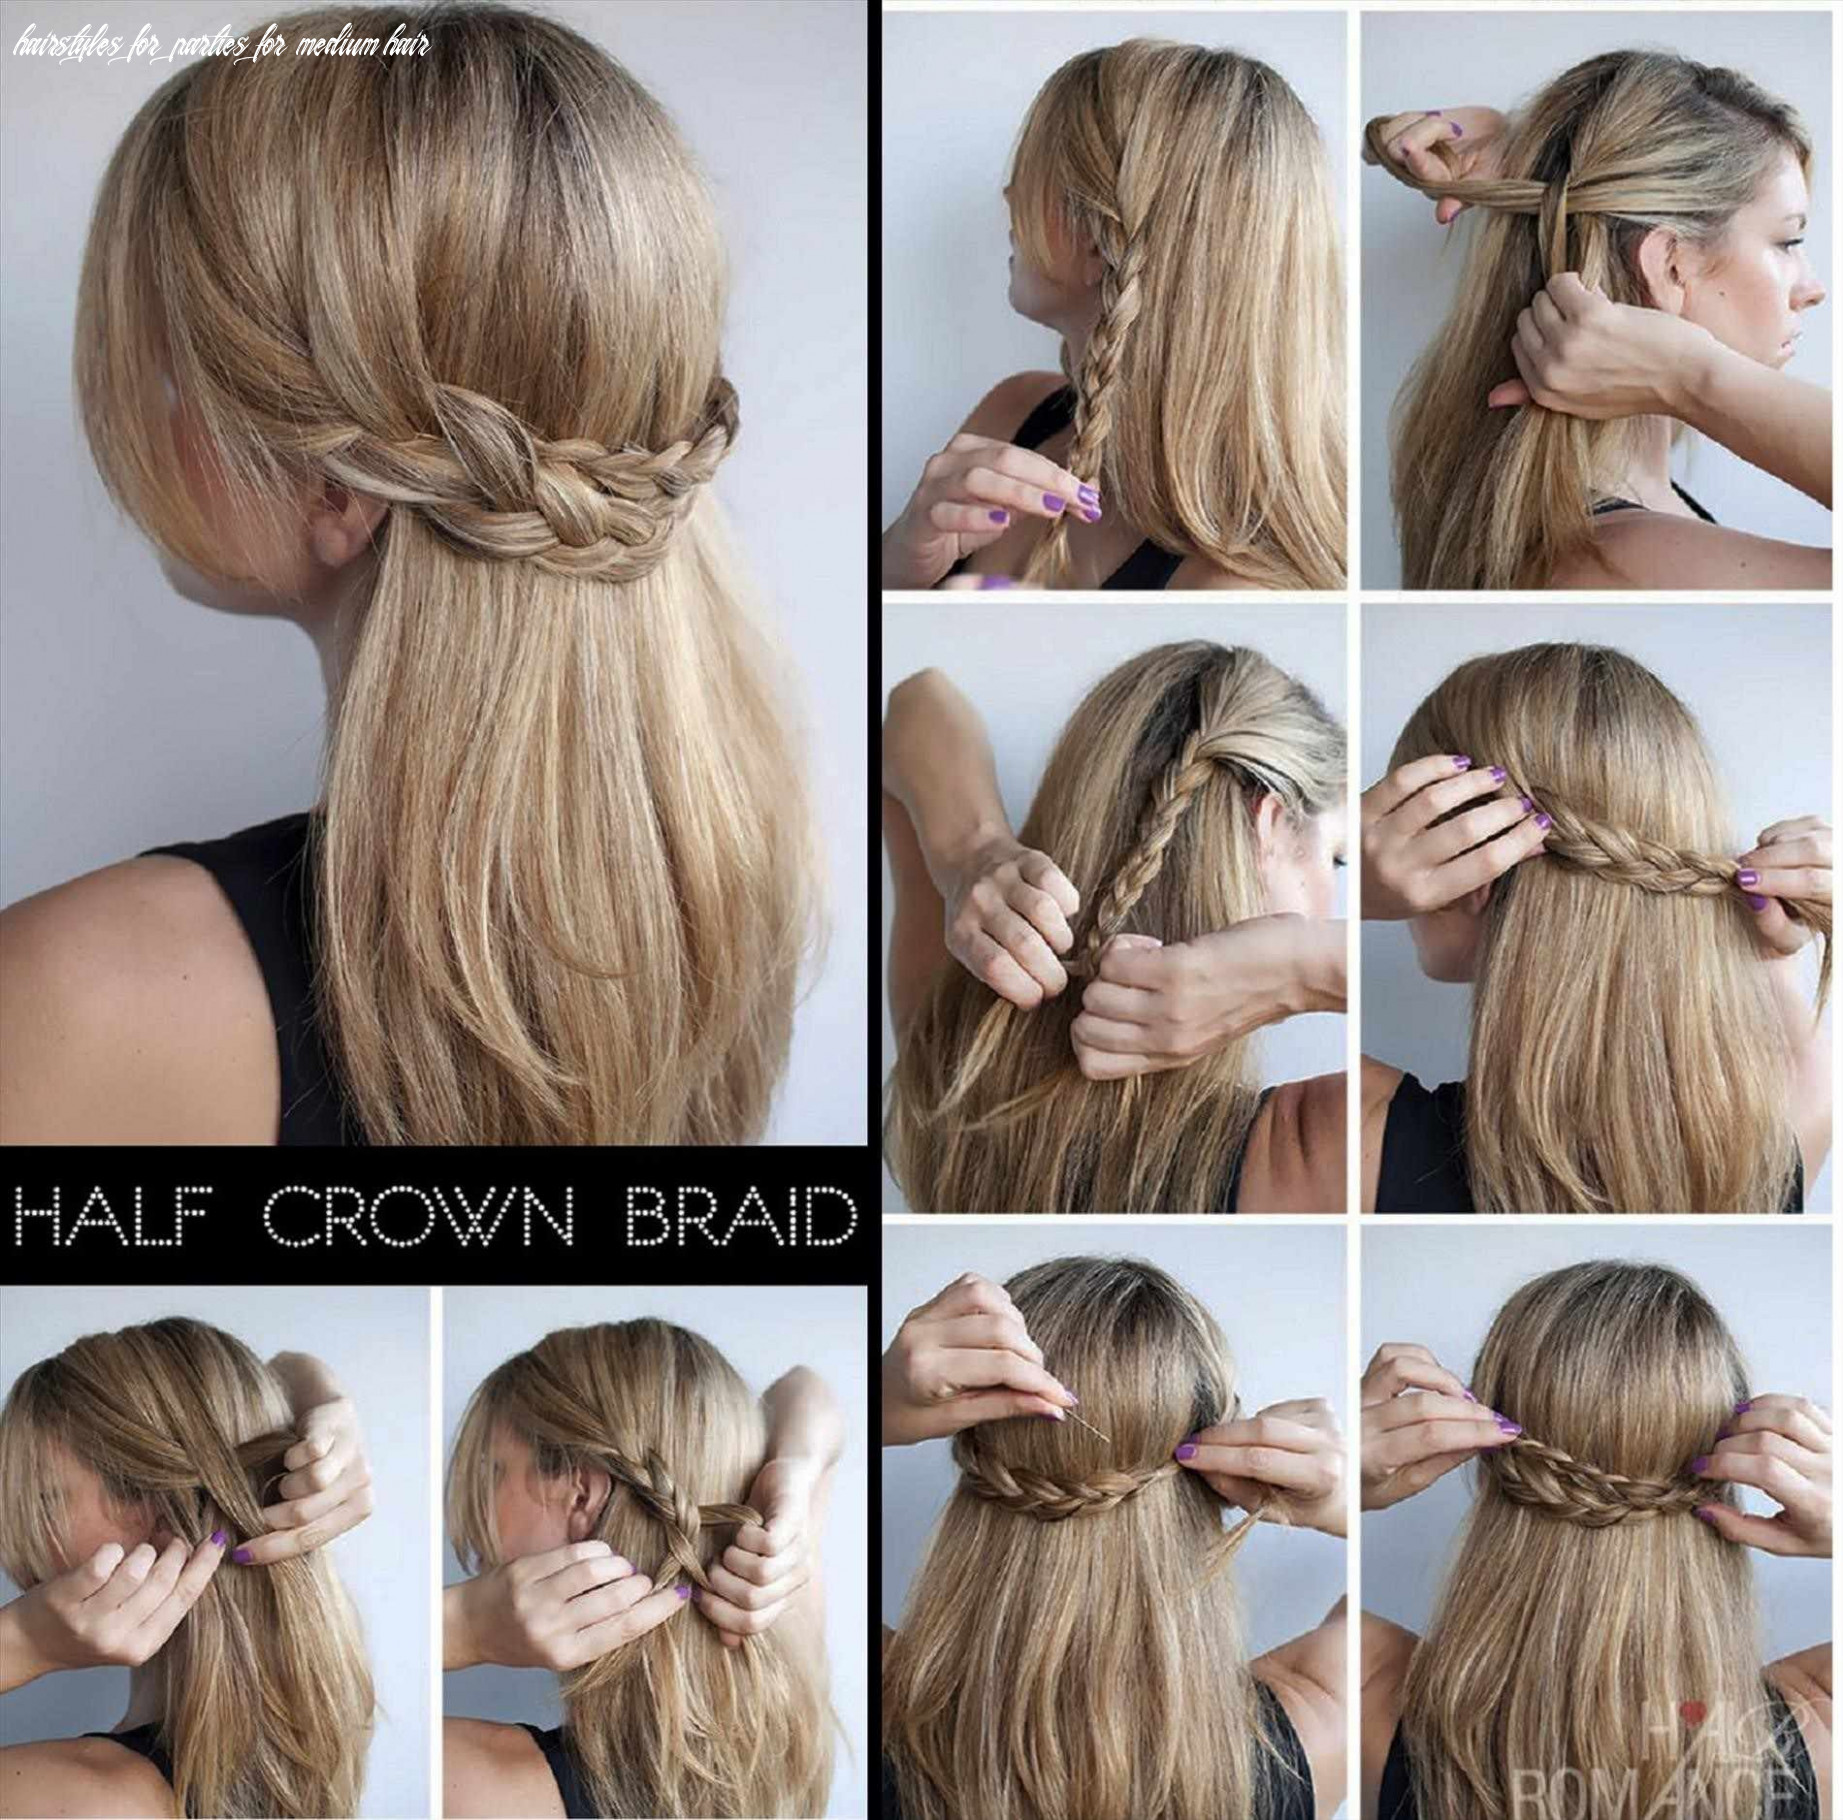 8 easy rules of simple hairstyle for party | cute blonde hair